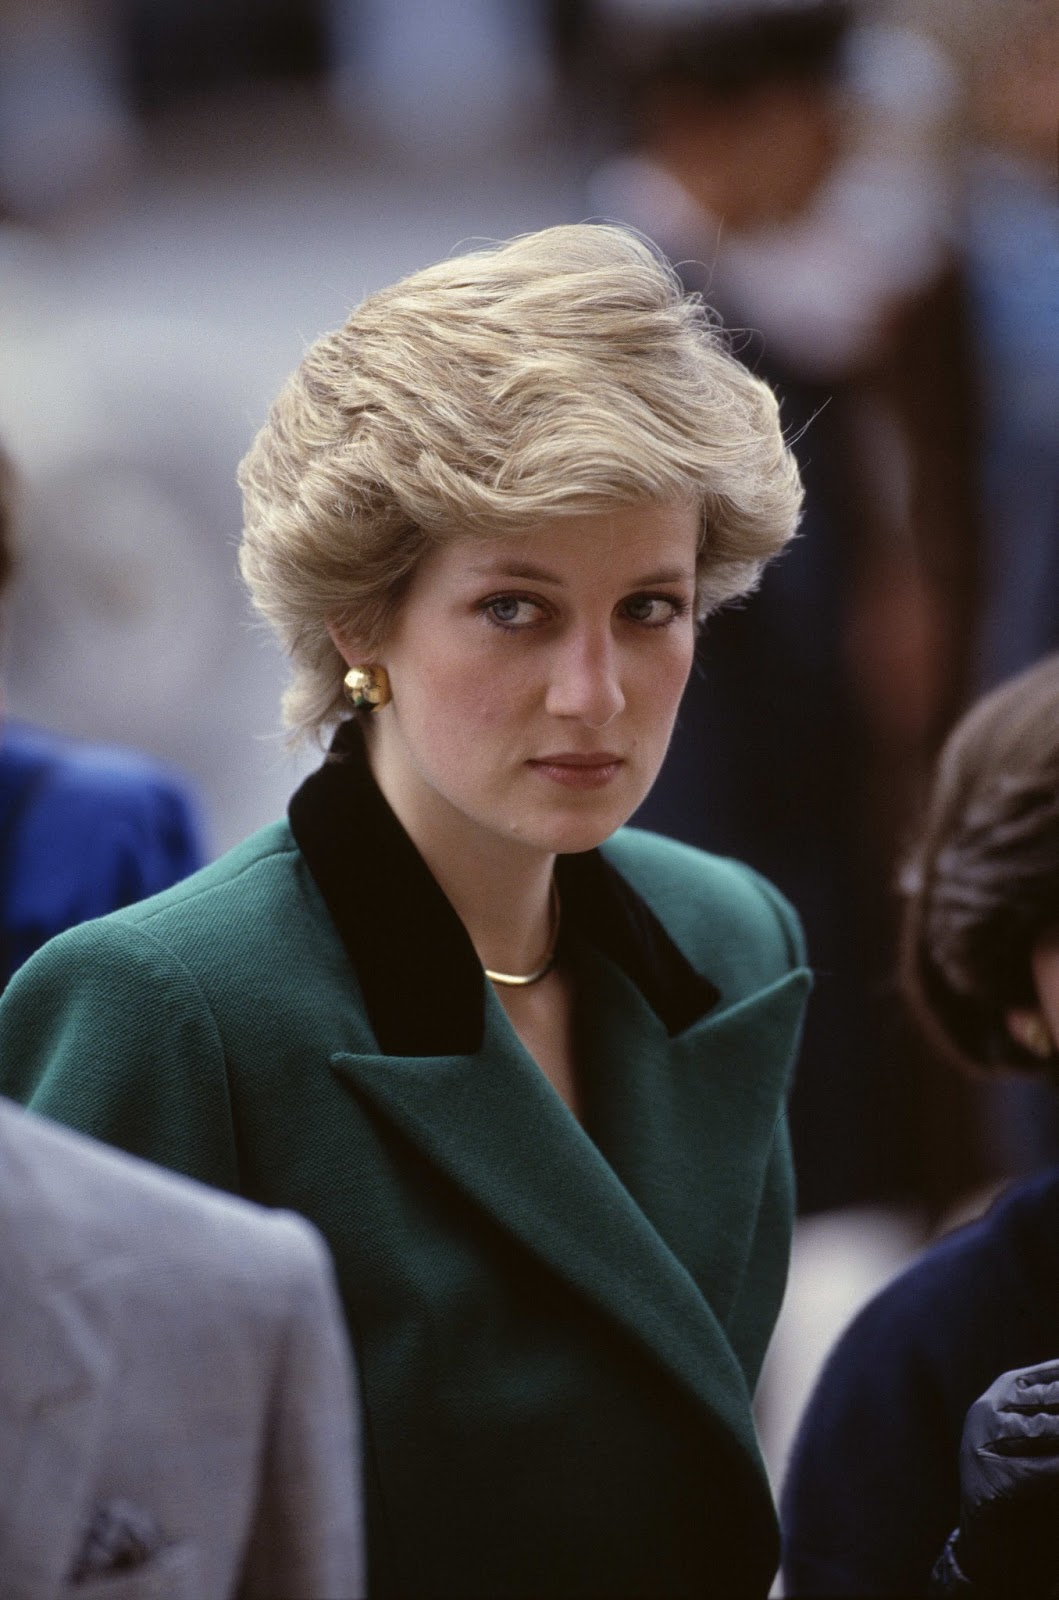 princess diana of wales Diana, princess of wales, is the late first wife of charles, prince of wales, and mother to princes william and harry as it nears the 21st anniversary of her death this august, we will be brining.